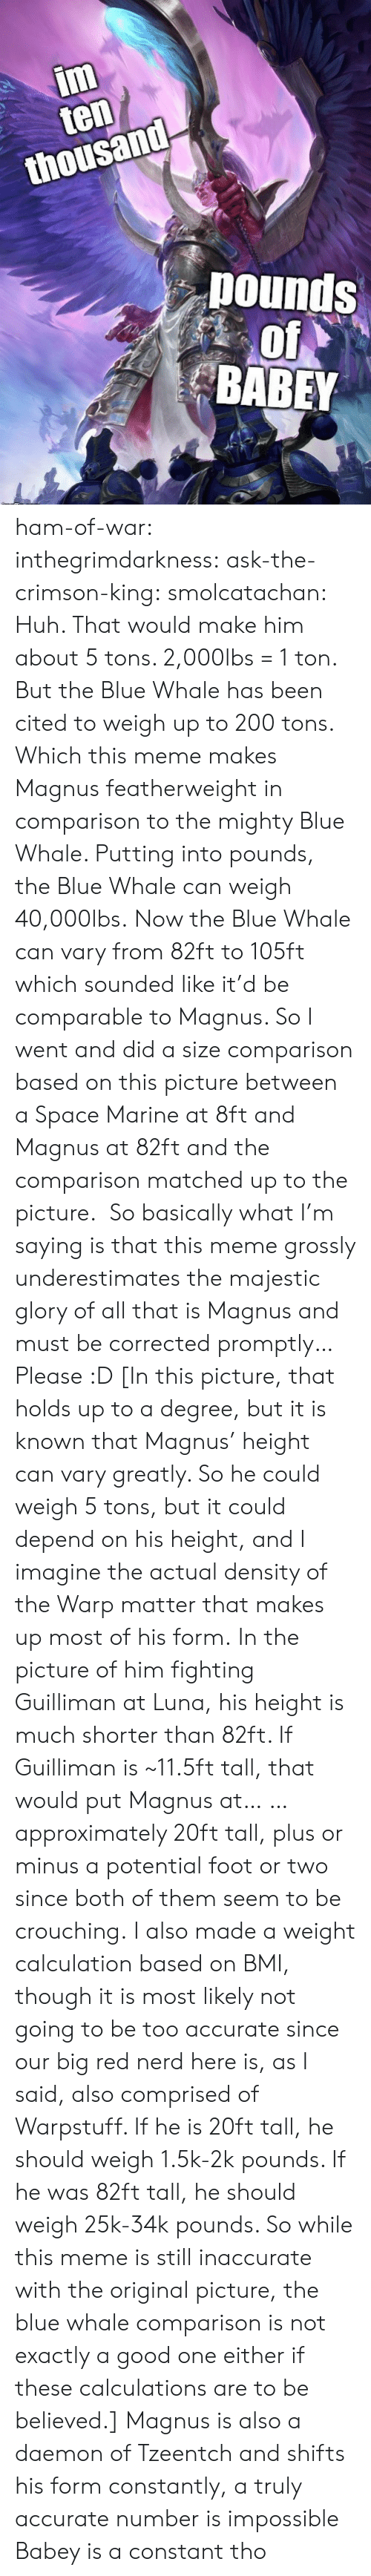 marine: im  ten  thousand  pounds  of  BABEY ham-of-war: inthegrimdarkness:   ask-the-crimson-king:   smolcatachan:  Huh. That would make him about 5 tons. 2,000lbs = 1 ton. But the Blue Whale has been cited to weigh up to 200 tons. Which this meme makes Magnus featherweight in comparison to the mighty Blue Whale. Putting into pounds, the Blue Whale can weigh 40,000lbs. Now the Blue Whale can vary from 82ft to 105ft which sounded like it'd be comparable to Magnus. So I went and did a size comparison based on this picture between a Space Marine at 8ft and Magnus at 82ft and the comparison matched up to the picture.  So basically what I'm saying is that this meme grossly underestimates the majestic glory of all that is Magnus and must be corrected promptly…Please :D  [In this picture, that holds up to a degree, but it is known that Magnus' height can vary greatly. So he could weigh 5 tons, but it could depend on his height, and I imagine the actual density of the Warp matter that makes up most of his form. In the picture of him fighting Guilliman at Luna, his height is much shorter than 82ft. If Guilliman is ~11.5ft tall, that would put Magnus at… … approximately 20ft tall, plus or minus a potential foot or two since both of them seem to be crouching. I also made a weight calculation based on BMI, though it is most likely not going to be too accurate since our big red nerd here is, as I said, also comprised of Warpstuff. If he is 20ft tall, he should weigh 1.5k-2k pounds. If he was 82ft tall, he should weigh 25k-34k pounds. So while this meme is still inaccurate with the original picture, the blue whale comparison is not exactly a good one either if these calculations are to be believed.]   Magnus is also a daemon of Tzeentch and shifts his form constantly, a truly accurate number is impossible    Babey is a constant tho